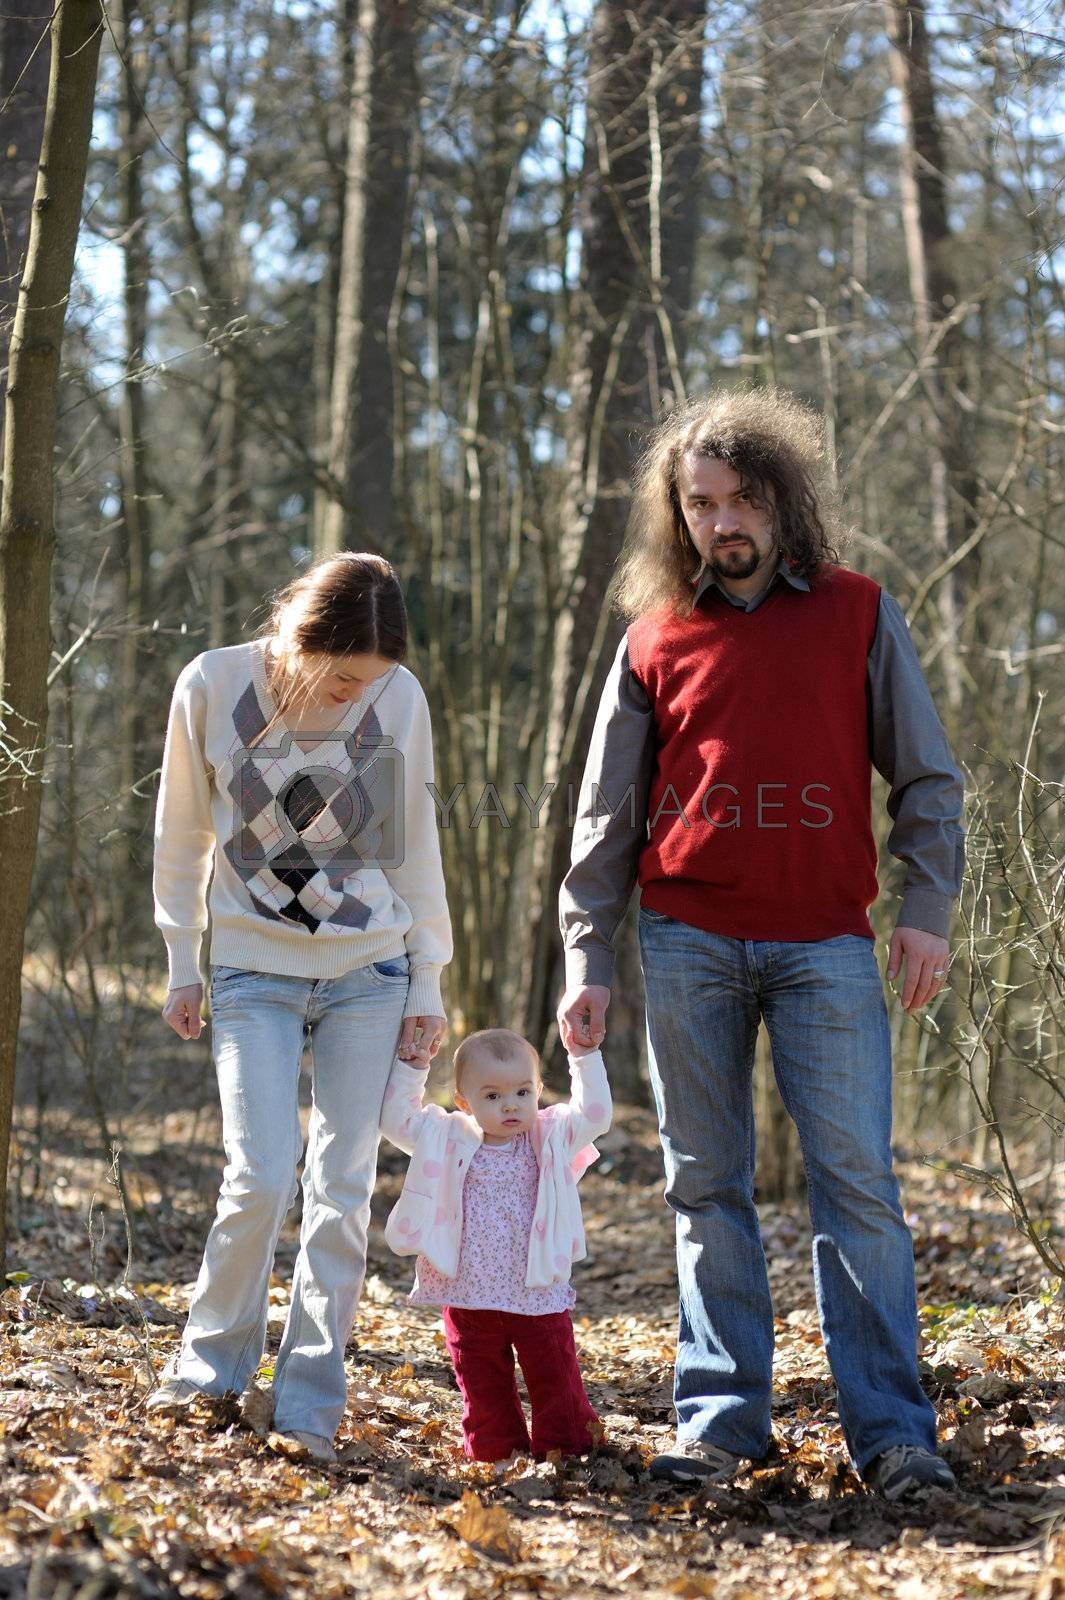 Young couple with their baby walking in the forest